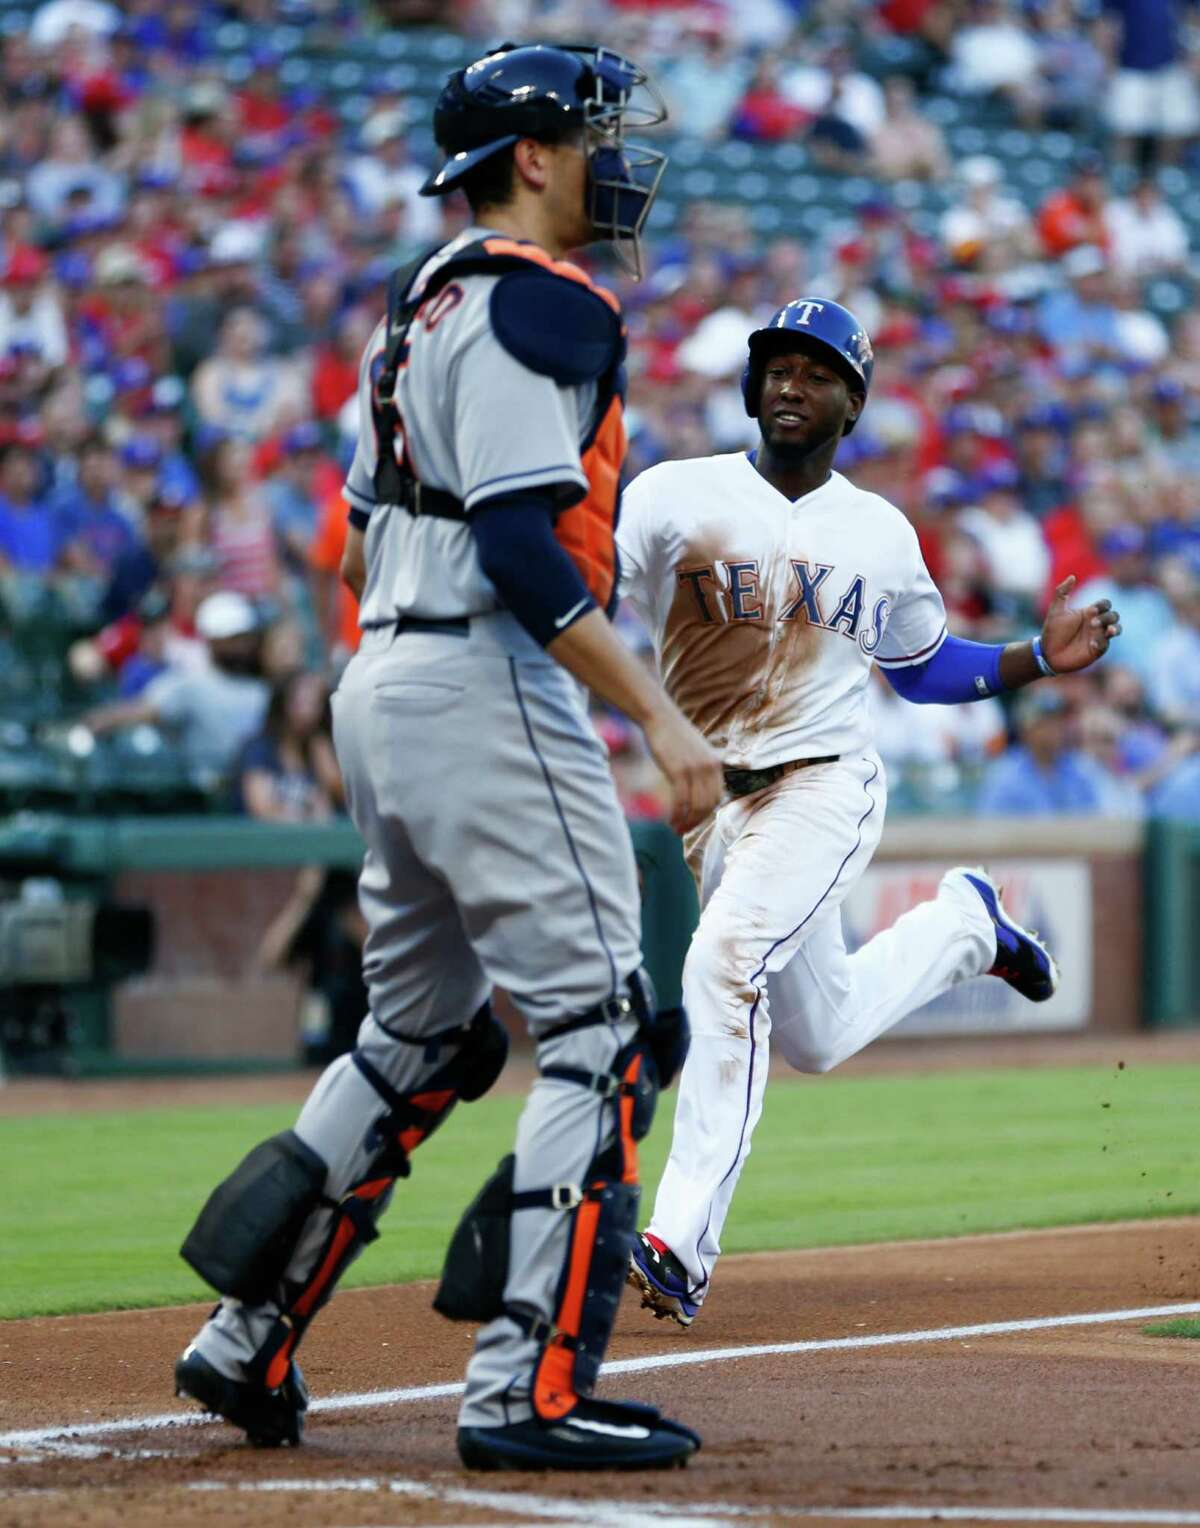 Texas Rangers second baseman Jurickson Profar, right, scores on a single by Ian Desmond in front of Houston Astros catcher Jason Castro during the first inning on Monday, June 6, 2016, at Globe Life Park in Arlington, Texas.